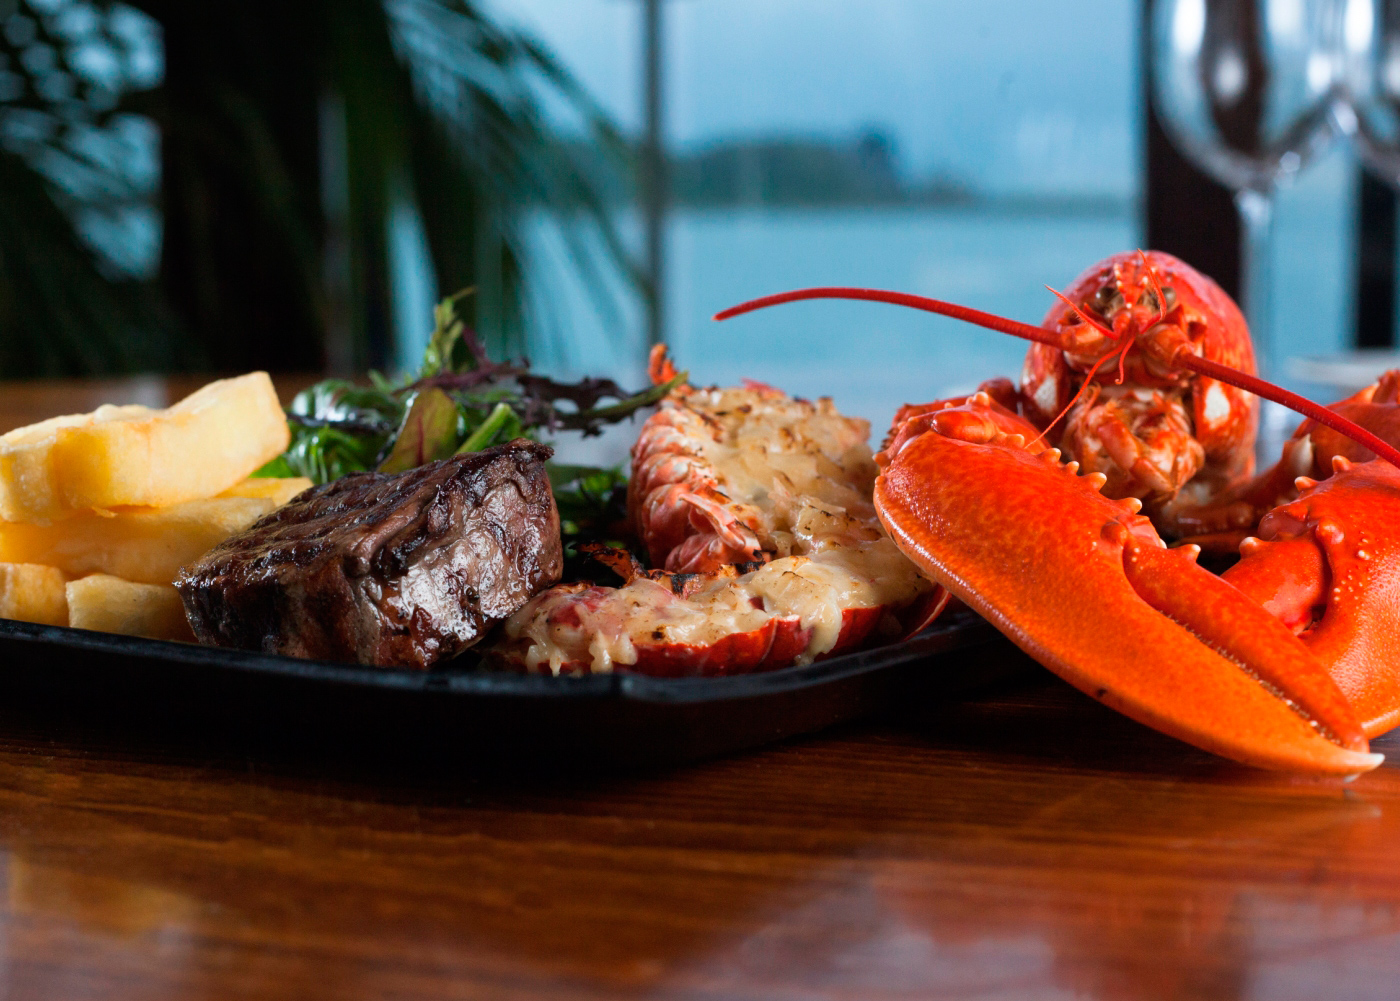 Our famous Surf and Turf (Lobster is subject to availability)